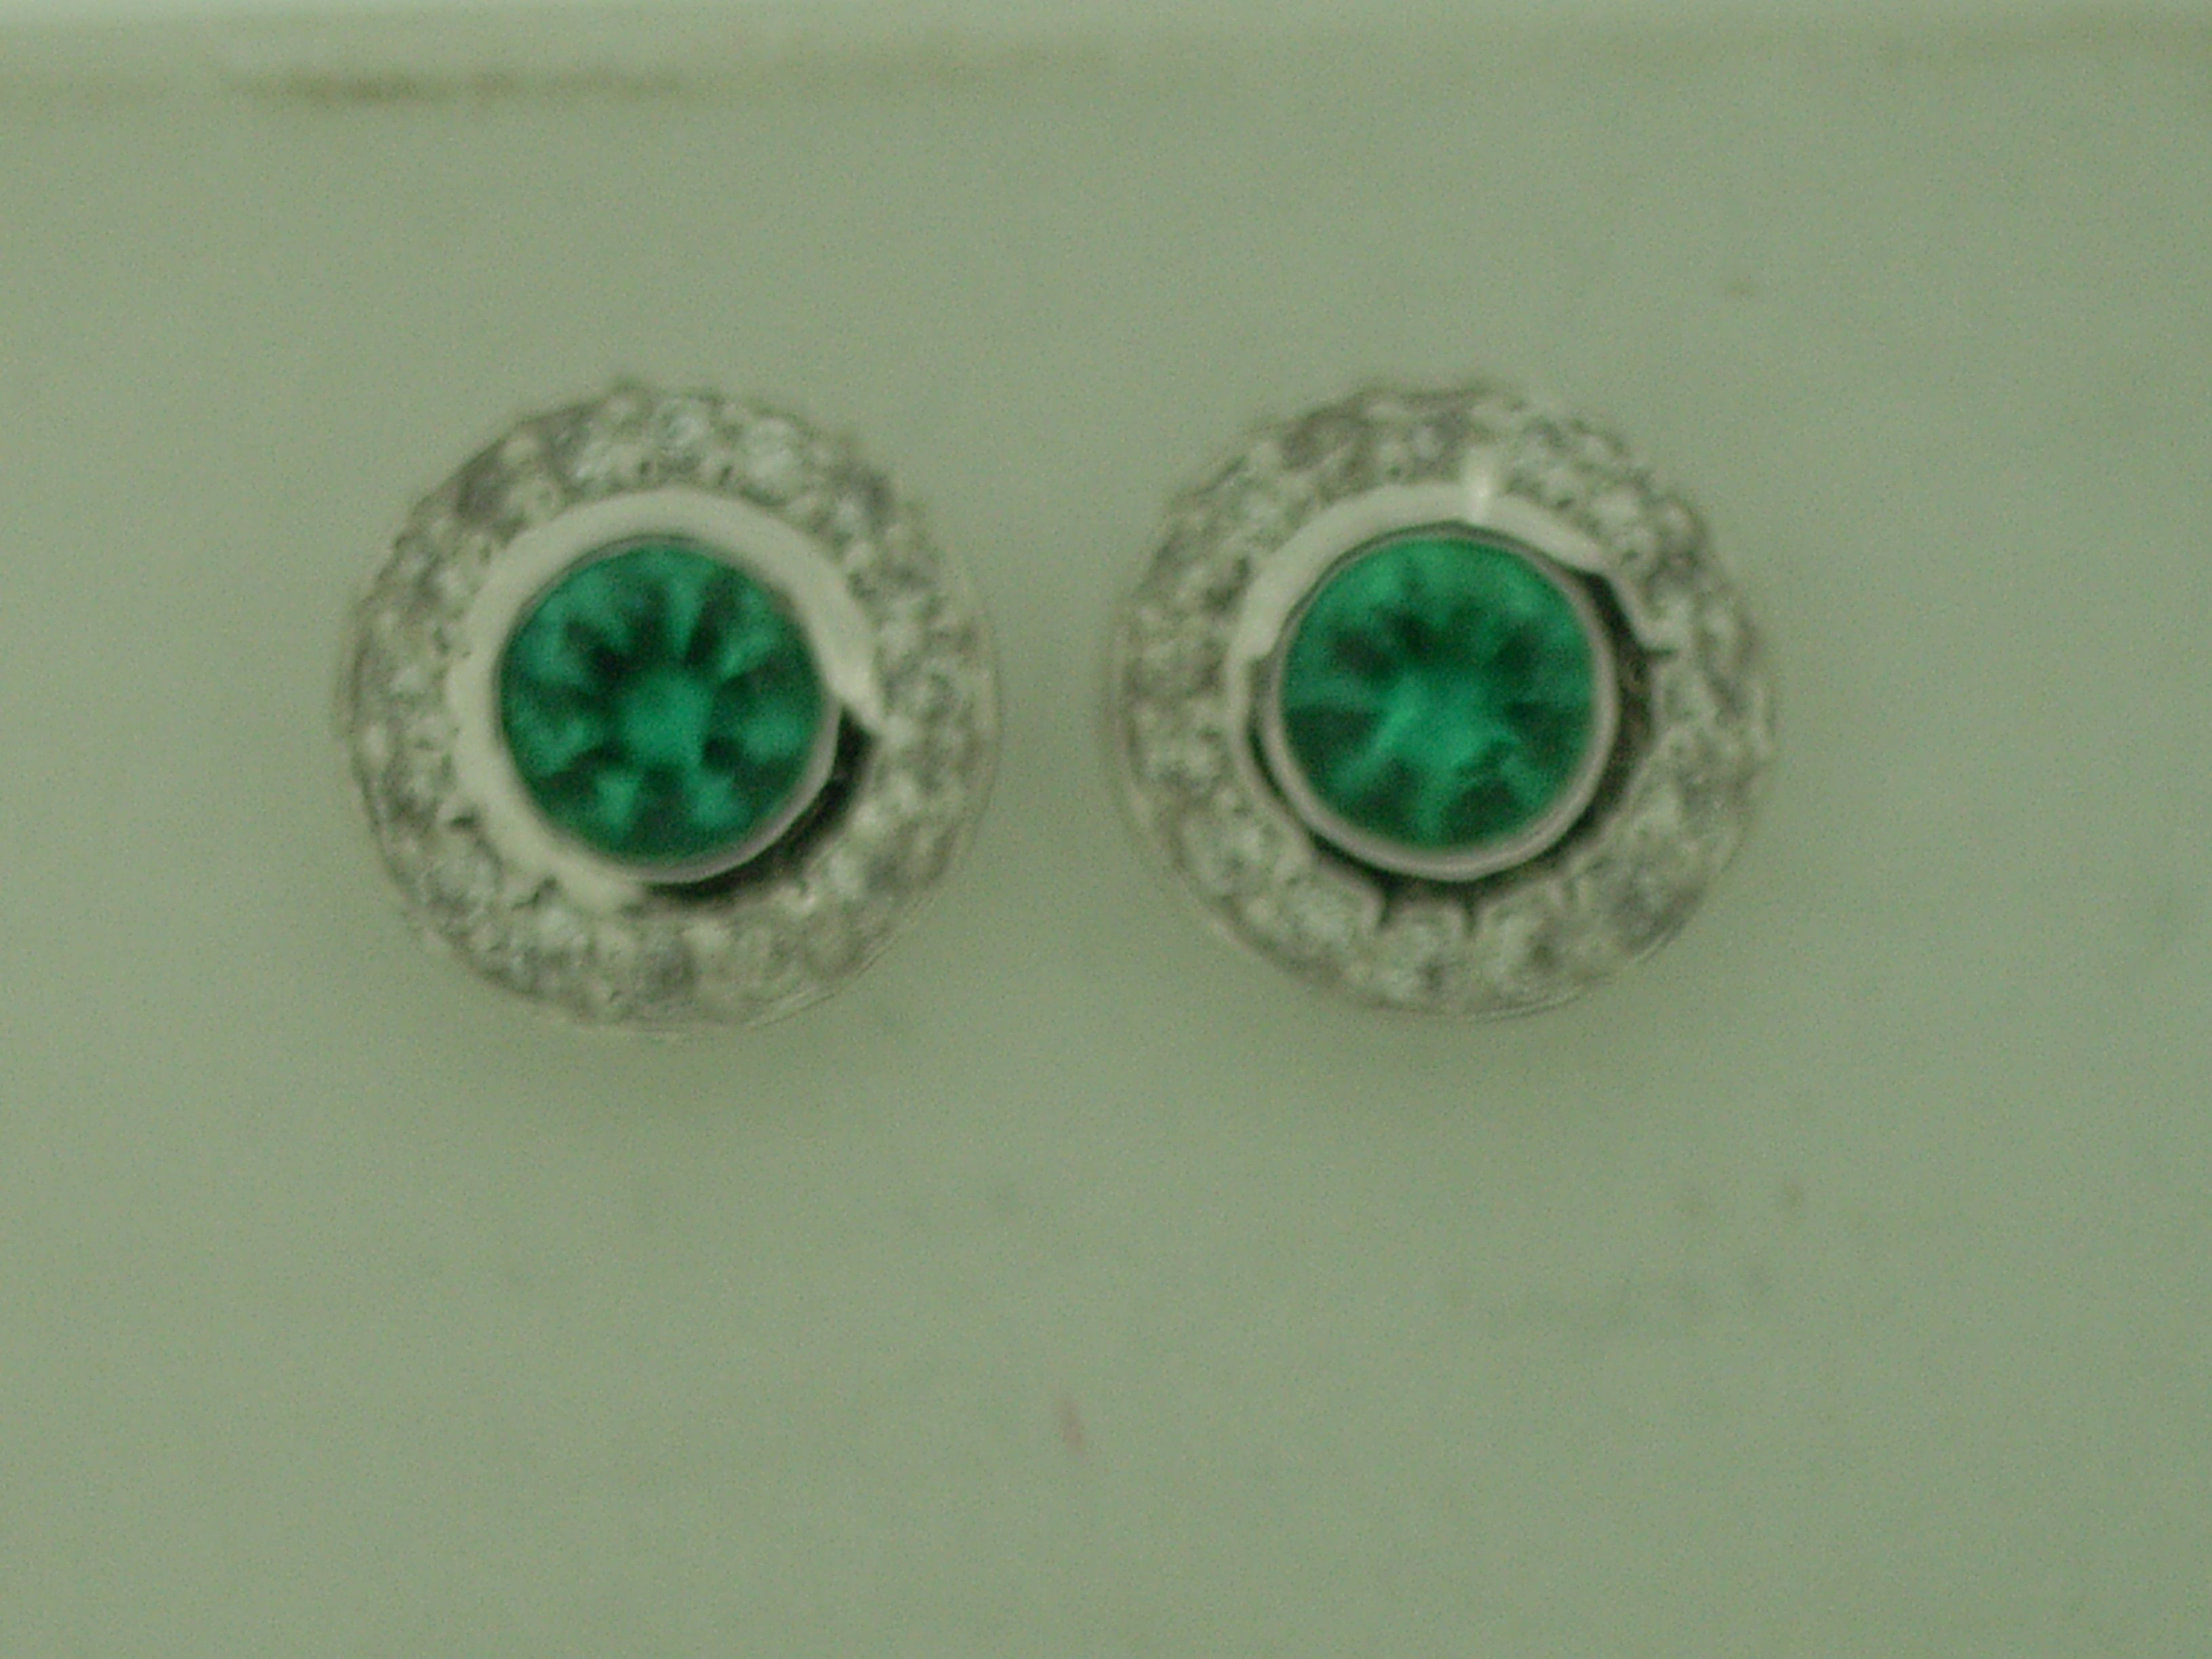 Halo style emerald and diamond earrings set in white gold earring